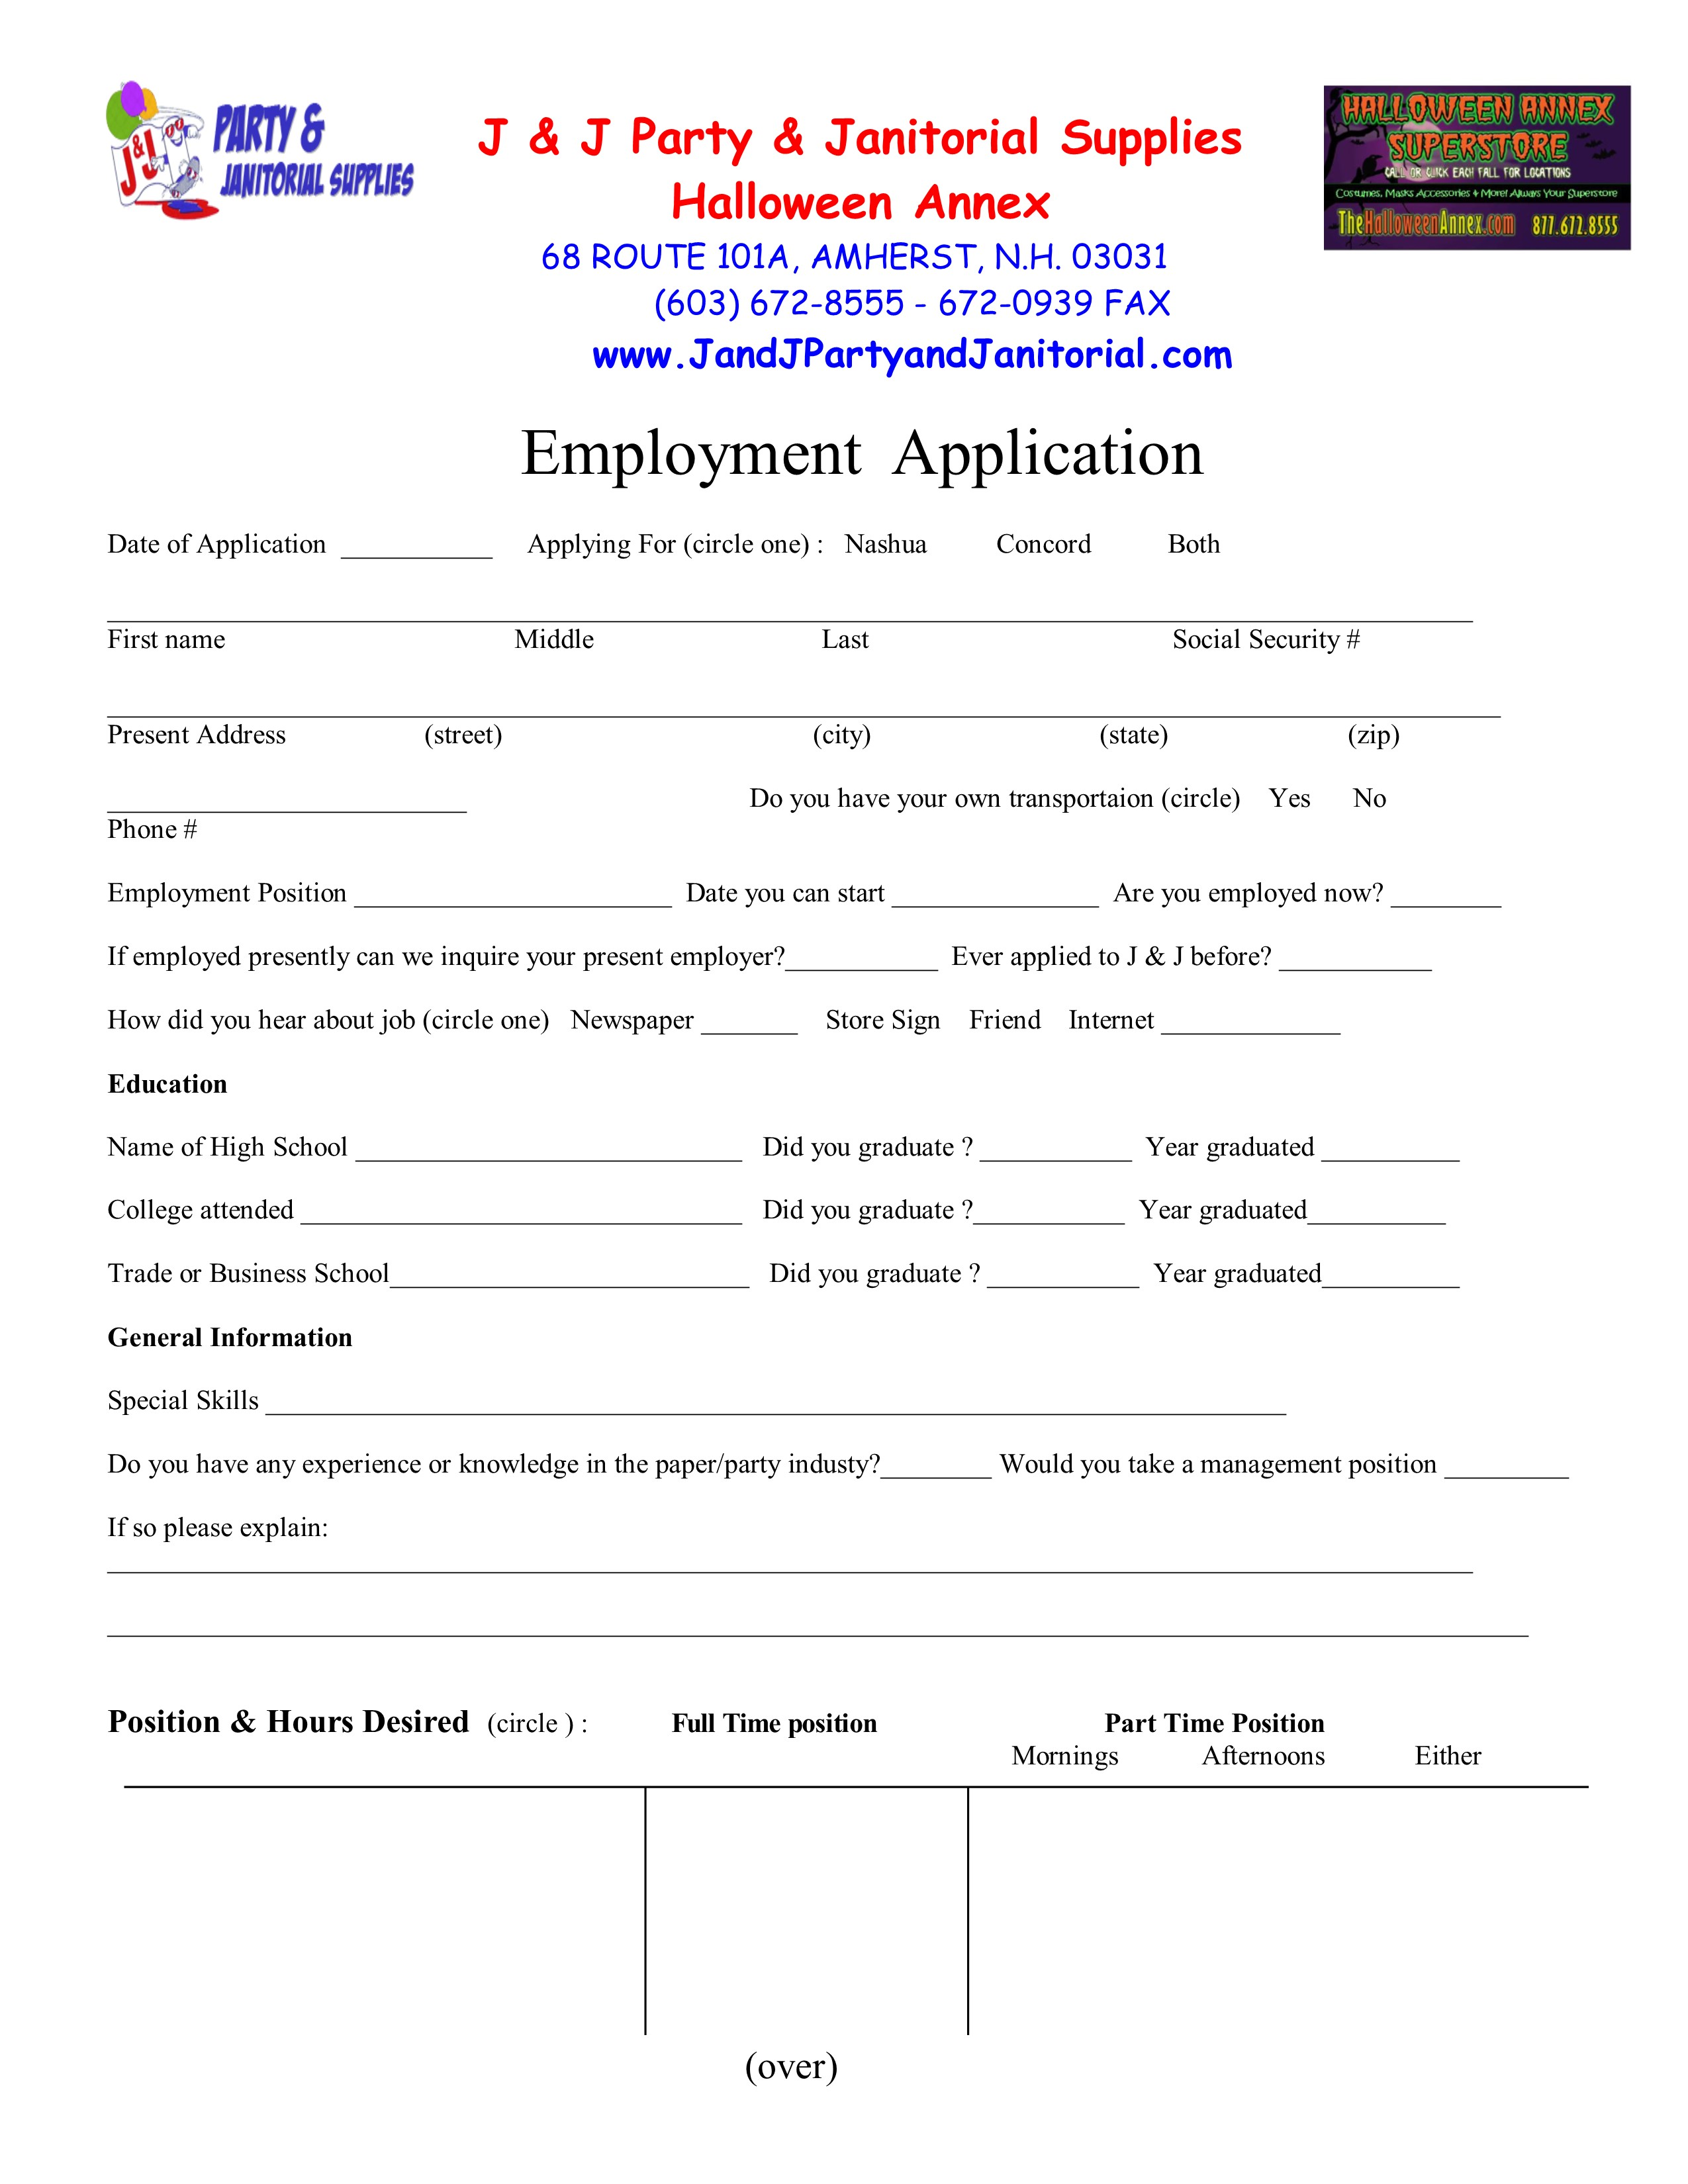 halloween-annex-employment-application-pg-1-2015.jpg